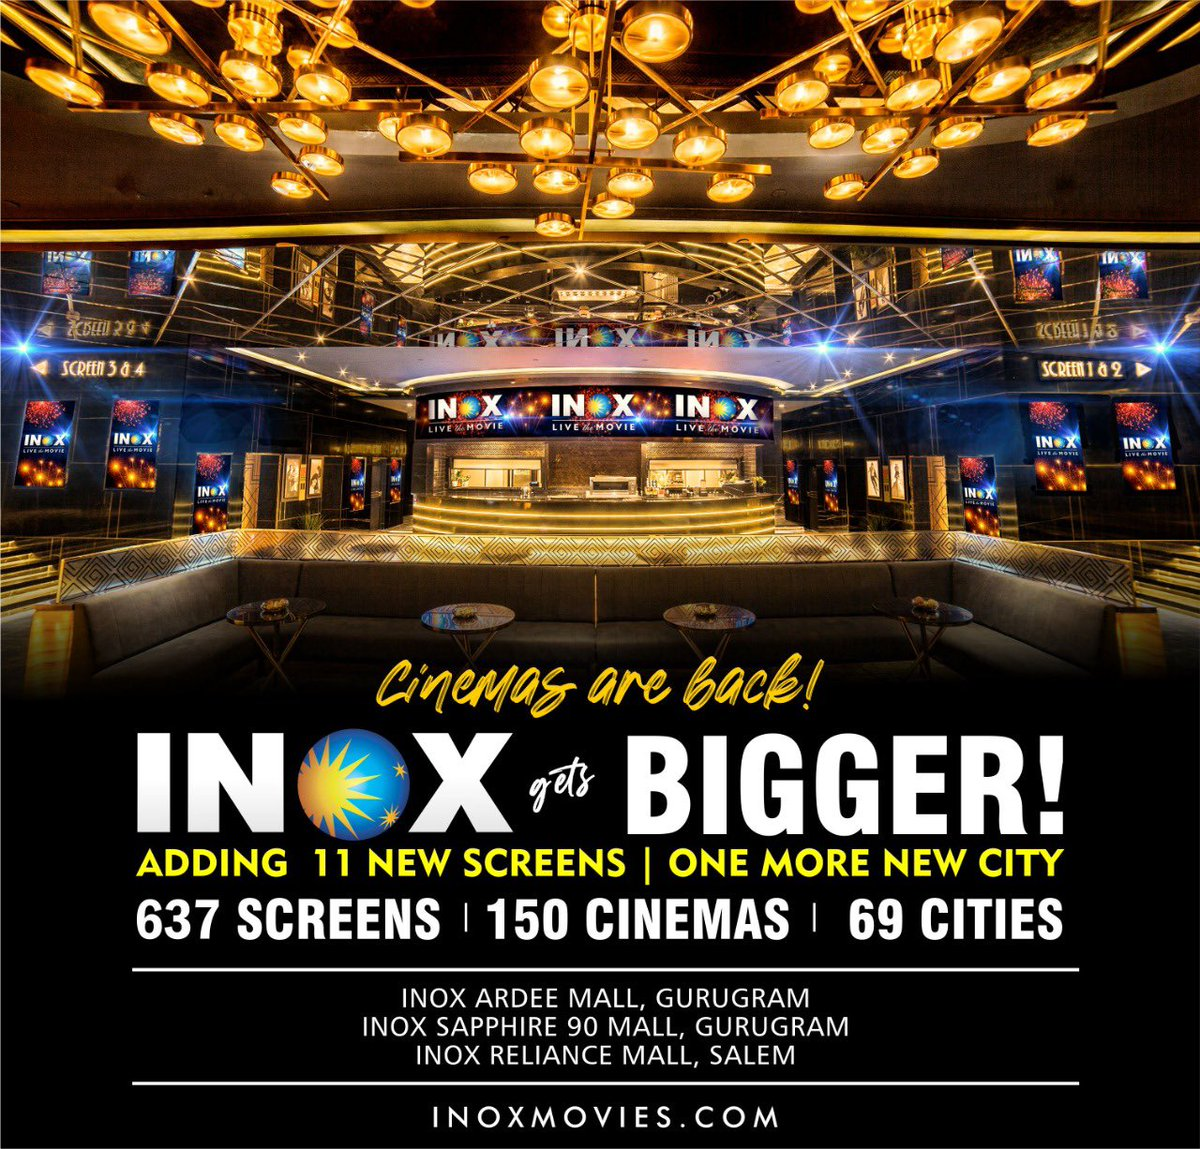 INOX creates history with 3 new properties and 11 new screens in Gurugram (2 properties of 4 screens each) and Salem (1 property of 3 screens), creating a record of sorts, of opening 3 properties on a single day, and also crossing the 150 cinemas milestone! #CinemasAreBack